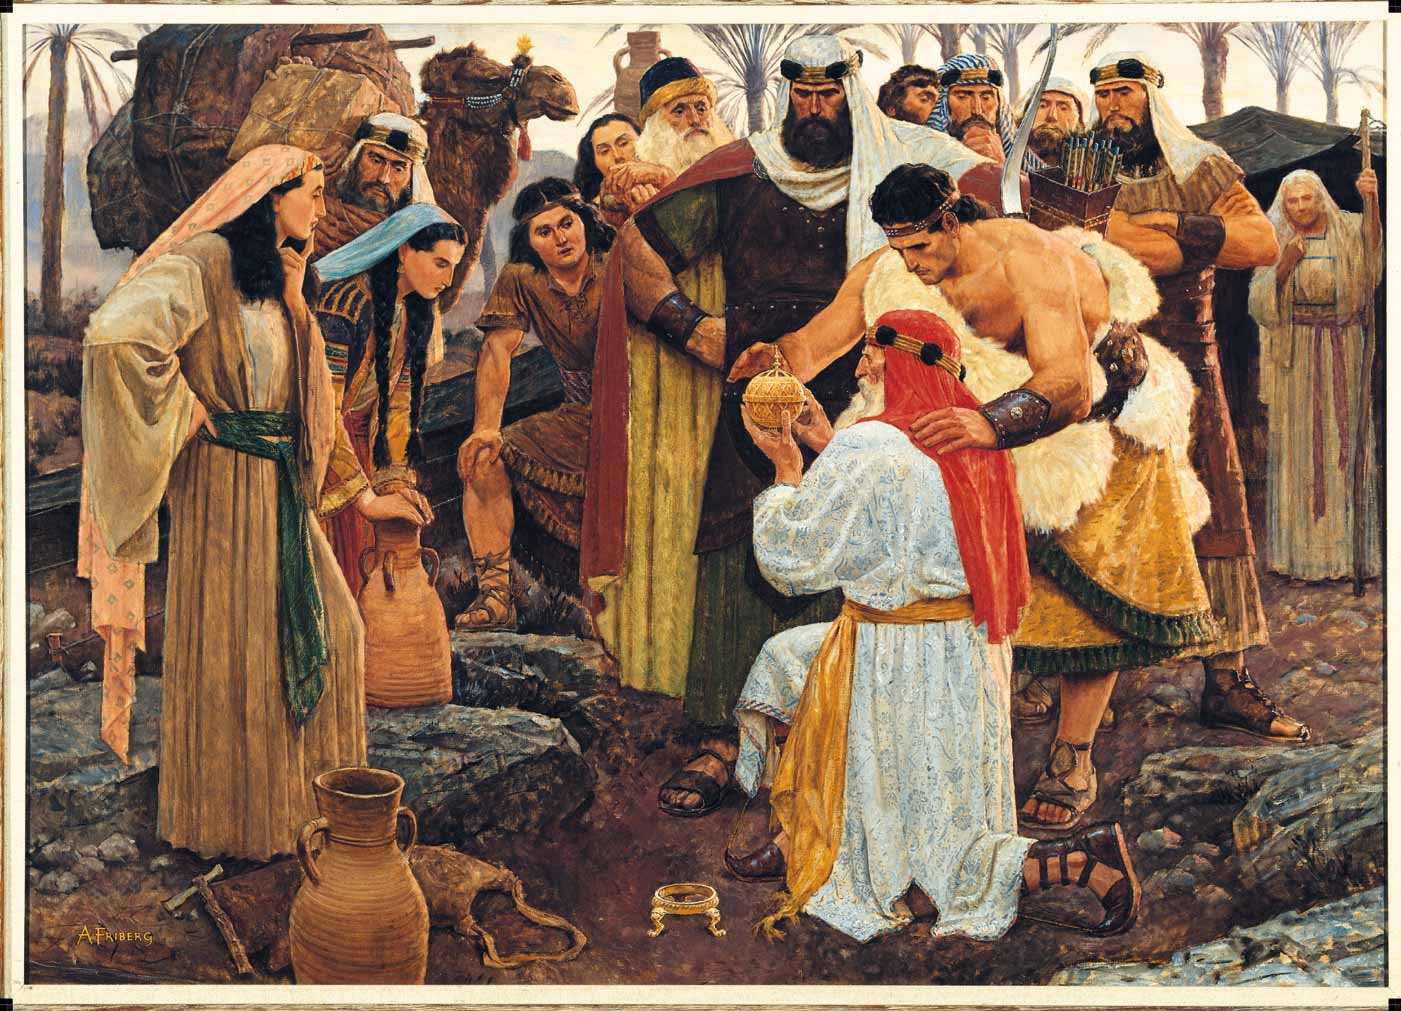 Arnold Friberg Book of Mormon Paintings